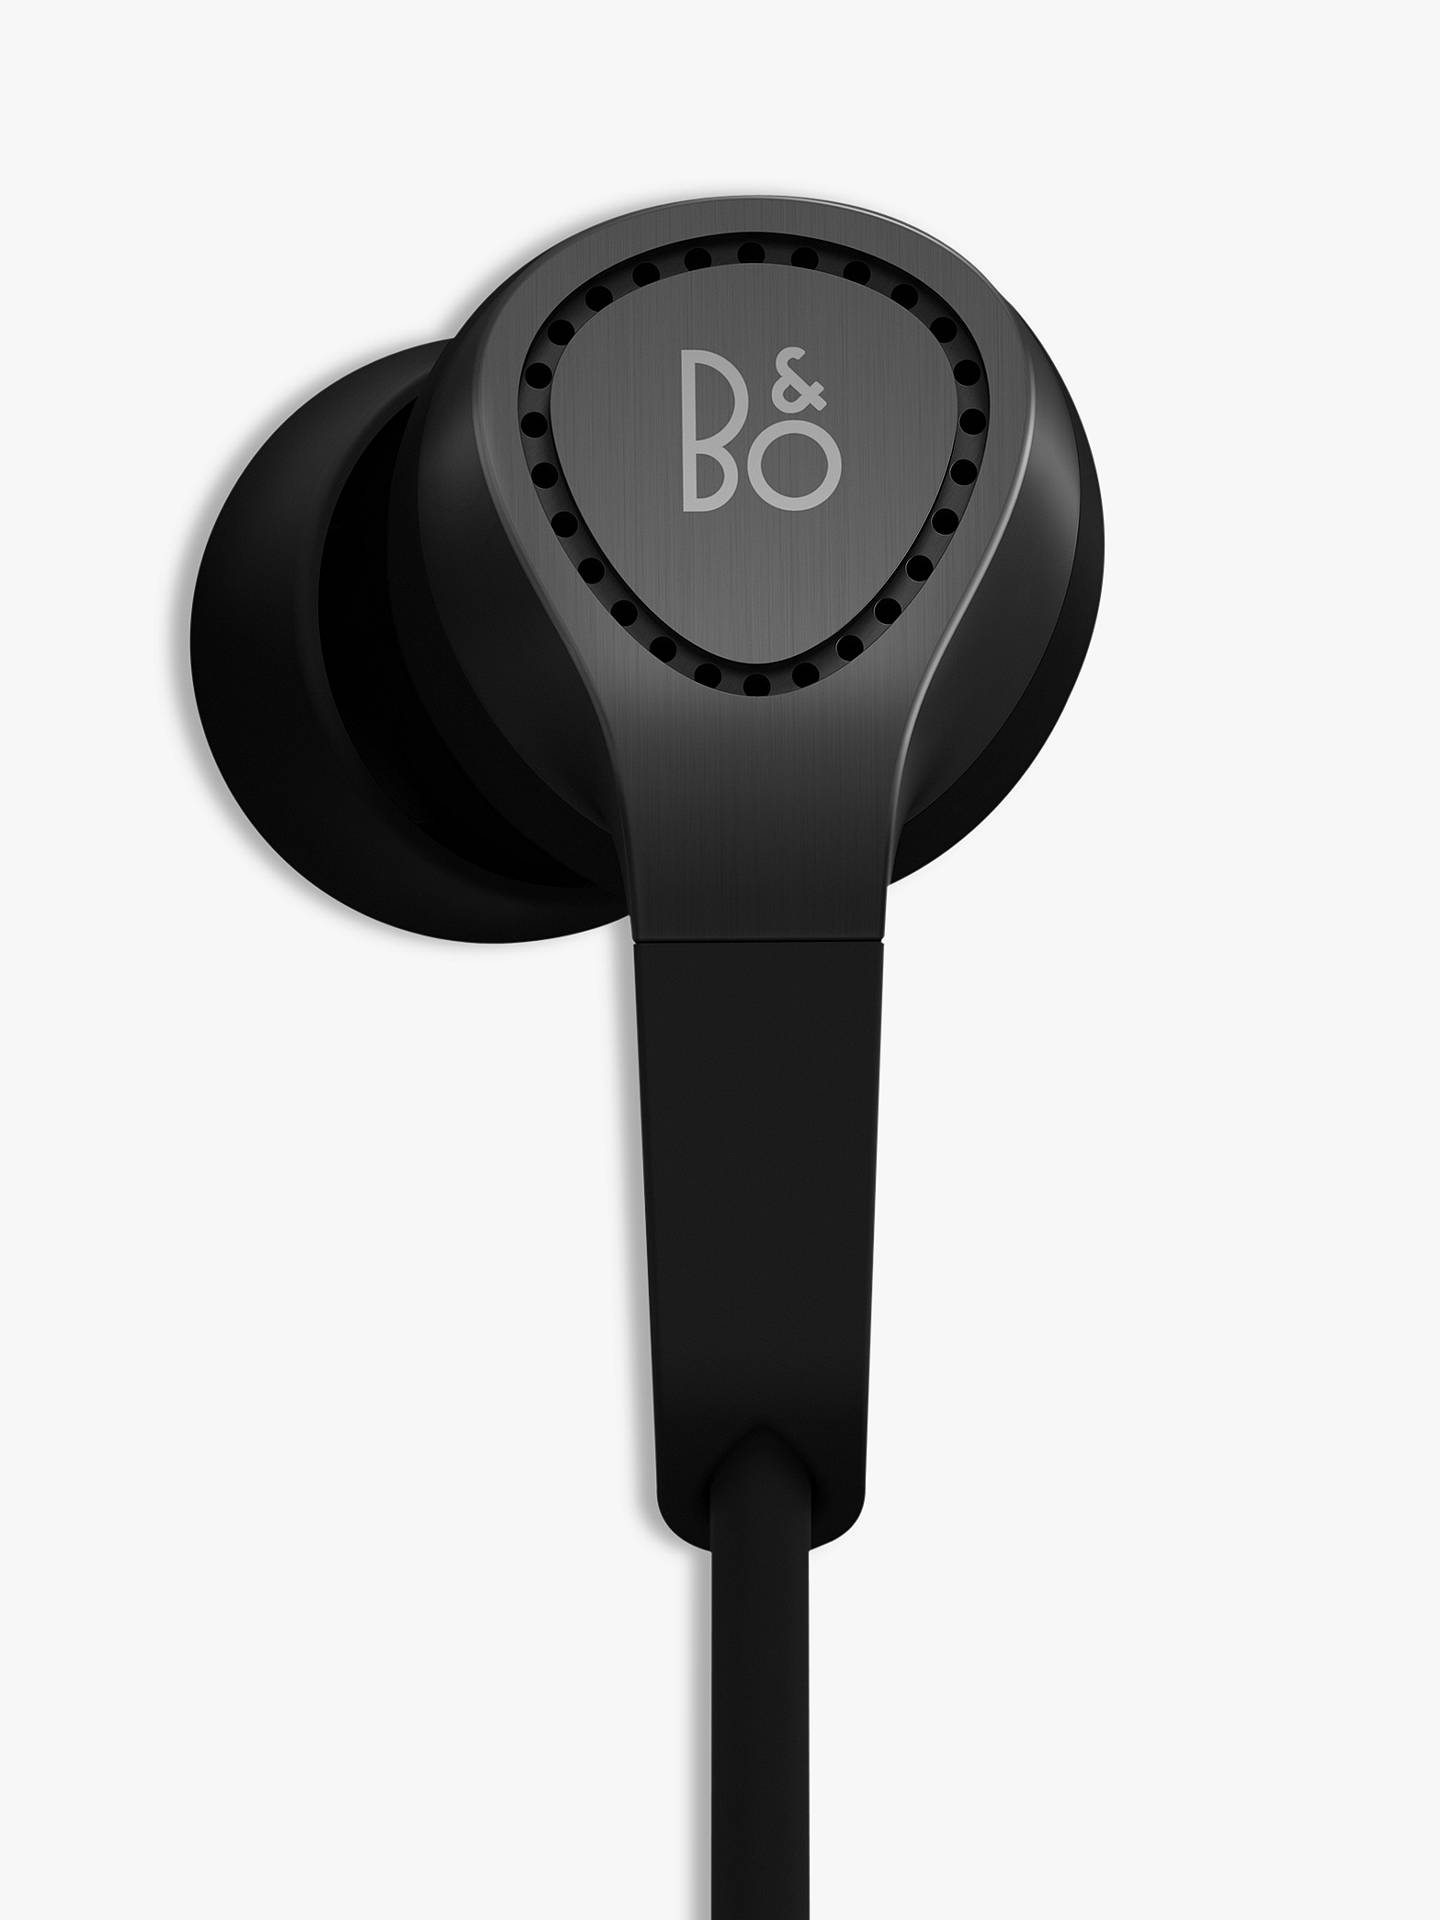 Buy Bang & Olufsen Beoplay H3 In-Ear Headphones with Mic/Remote for iOS Devices, Black Online at johnlewis.com